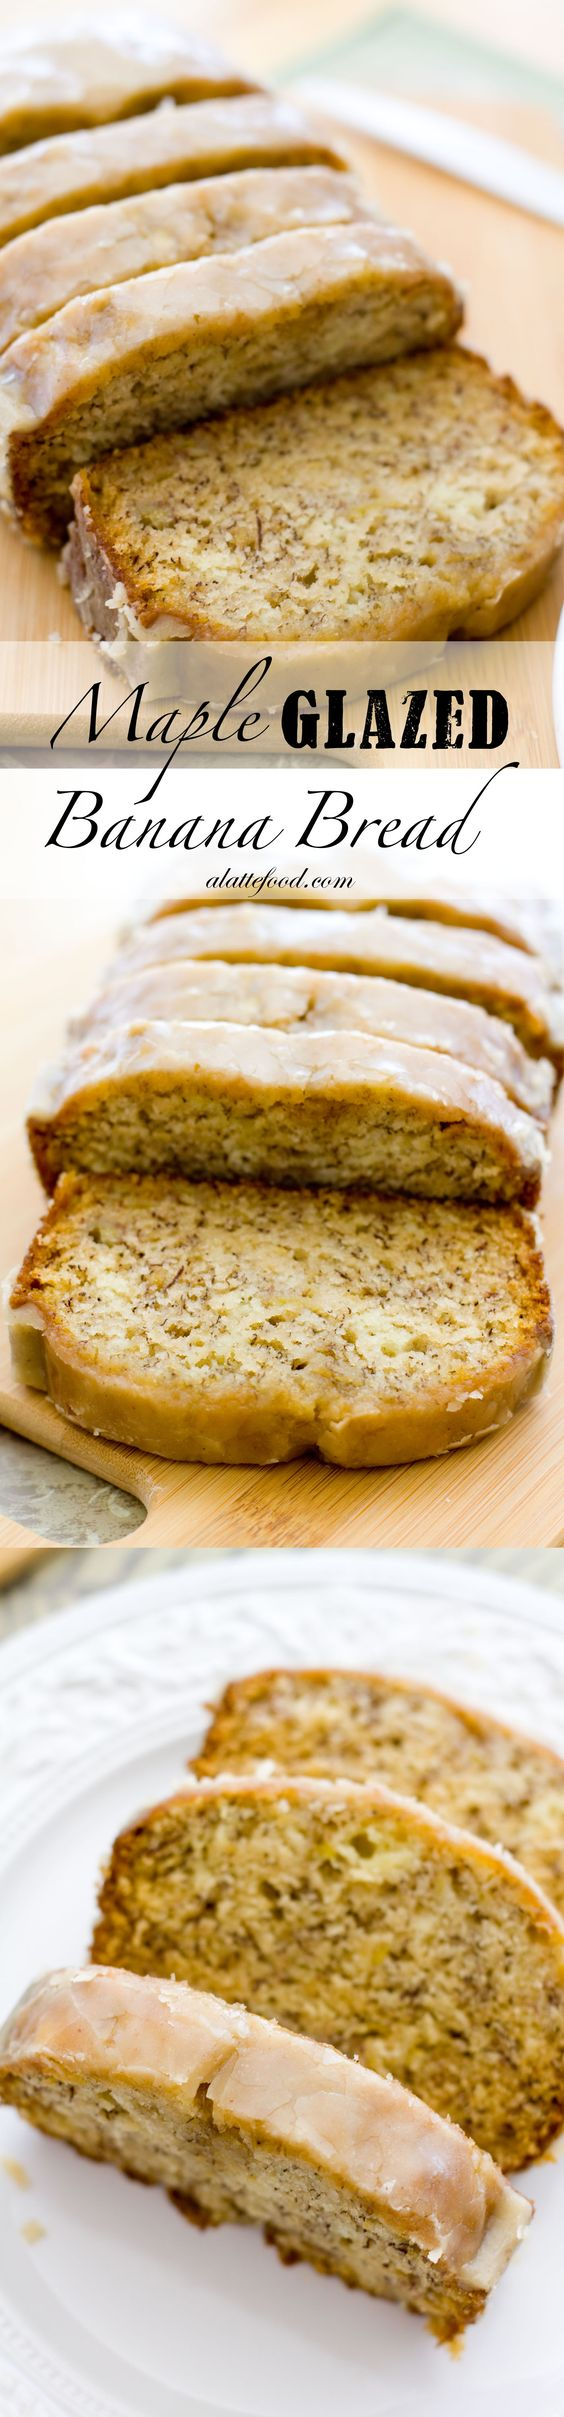 Maple Glazed Banana Bread | Mom's banana bread topped with a maple glaze that's to die for!